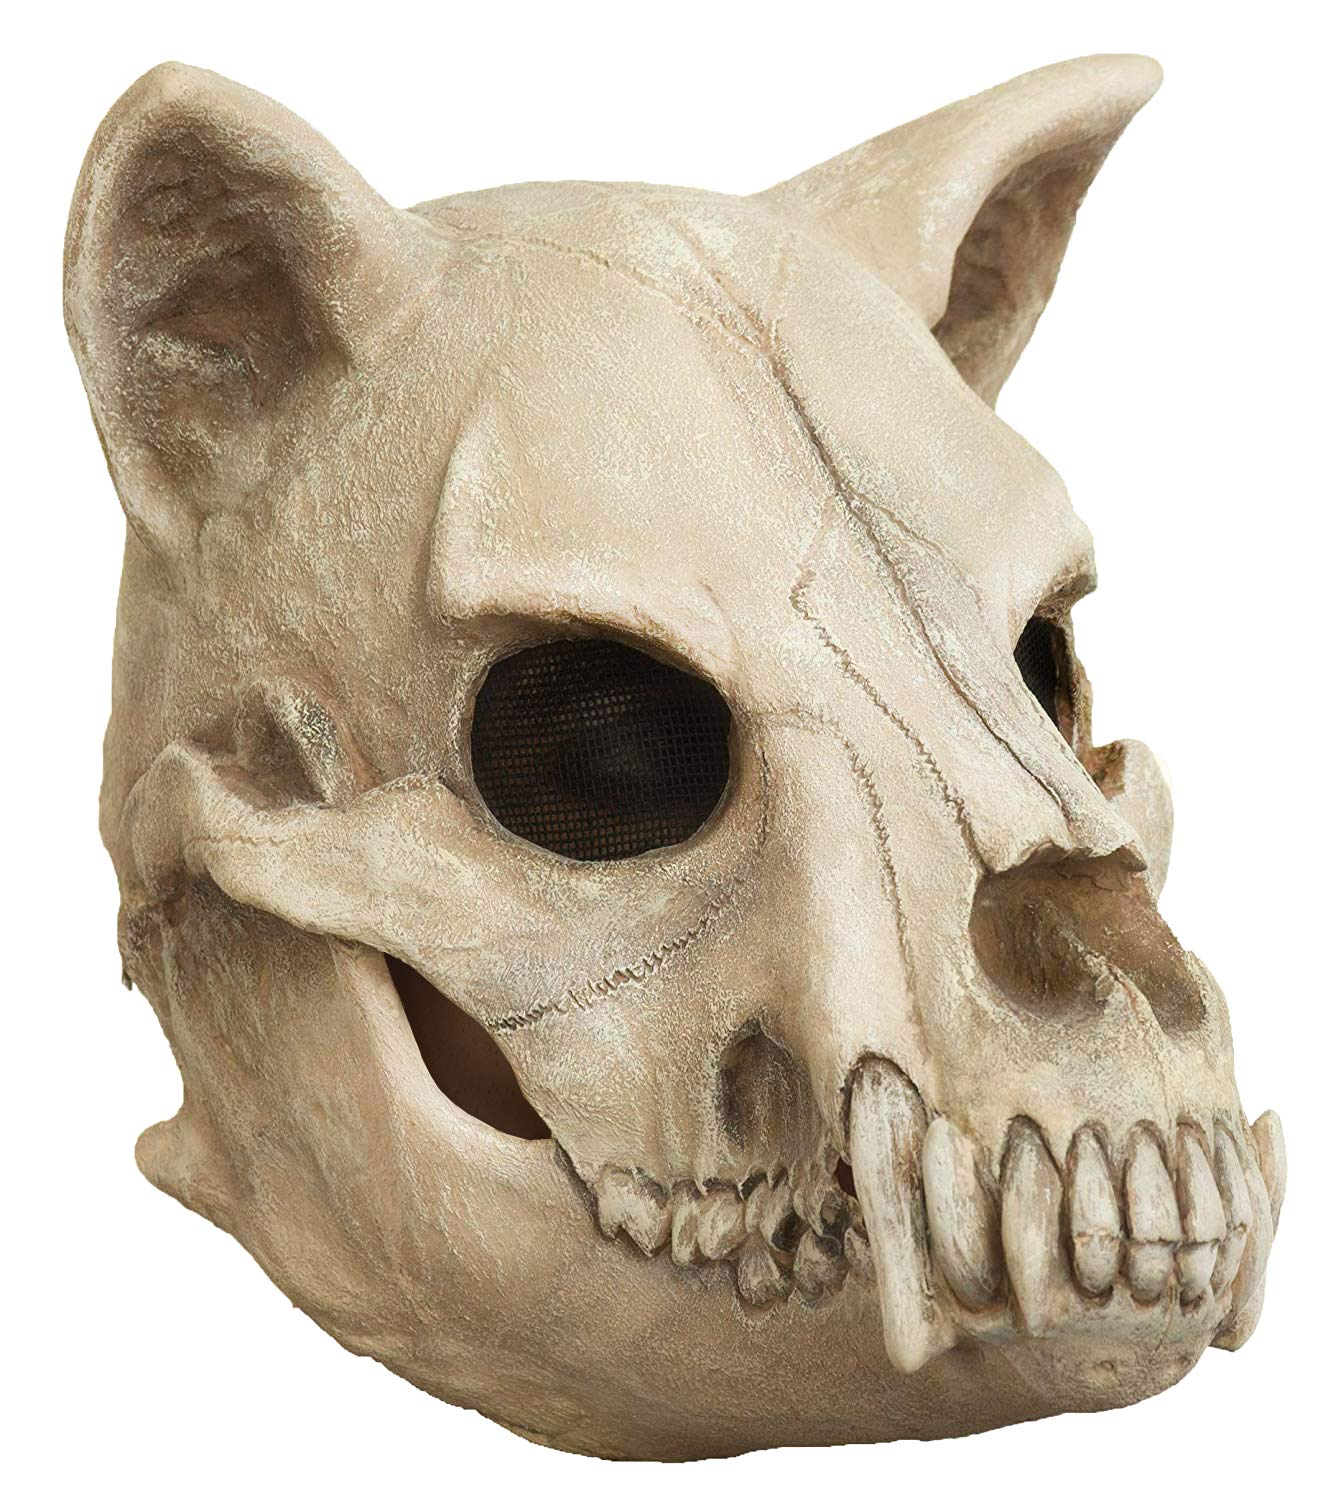 Dog Skull Adult Latex Halloween Mask Costume Prop Accessory by Ghoulish Productions